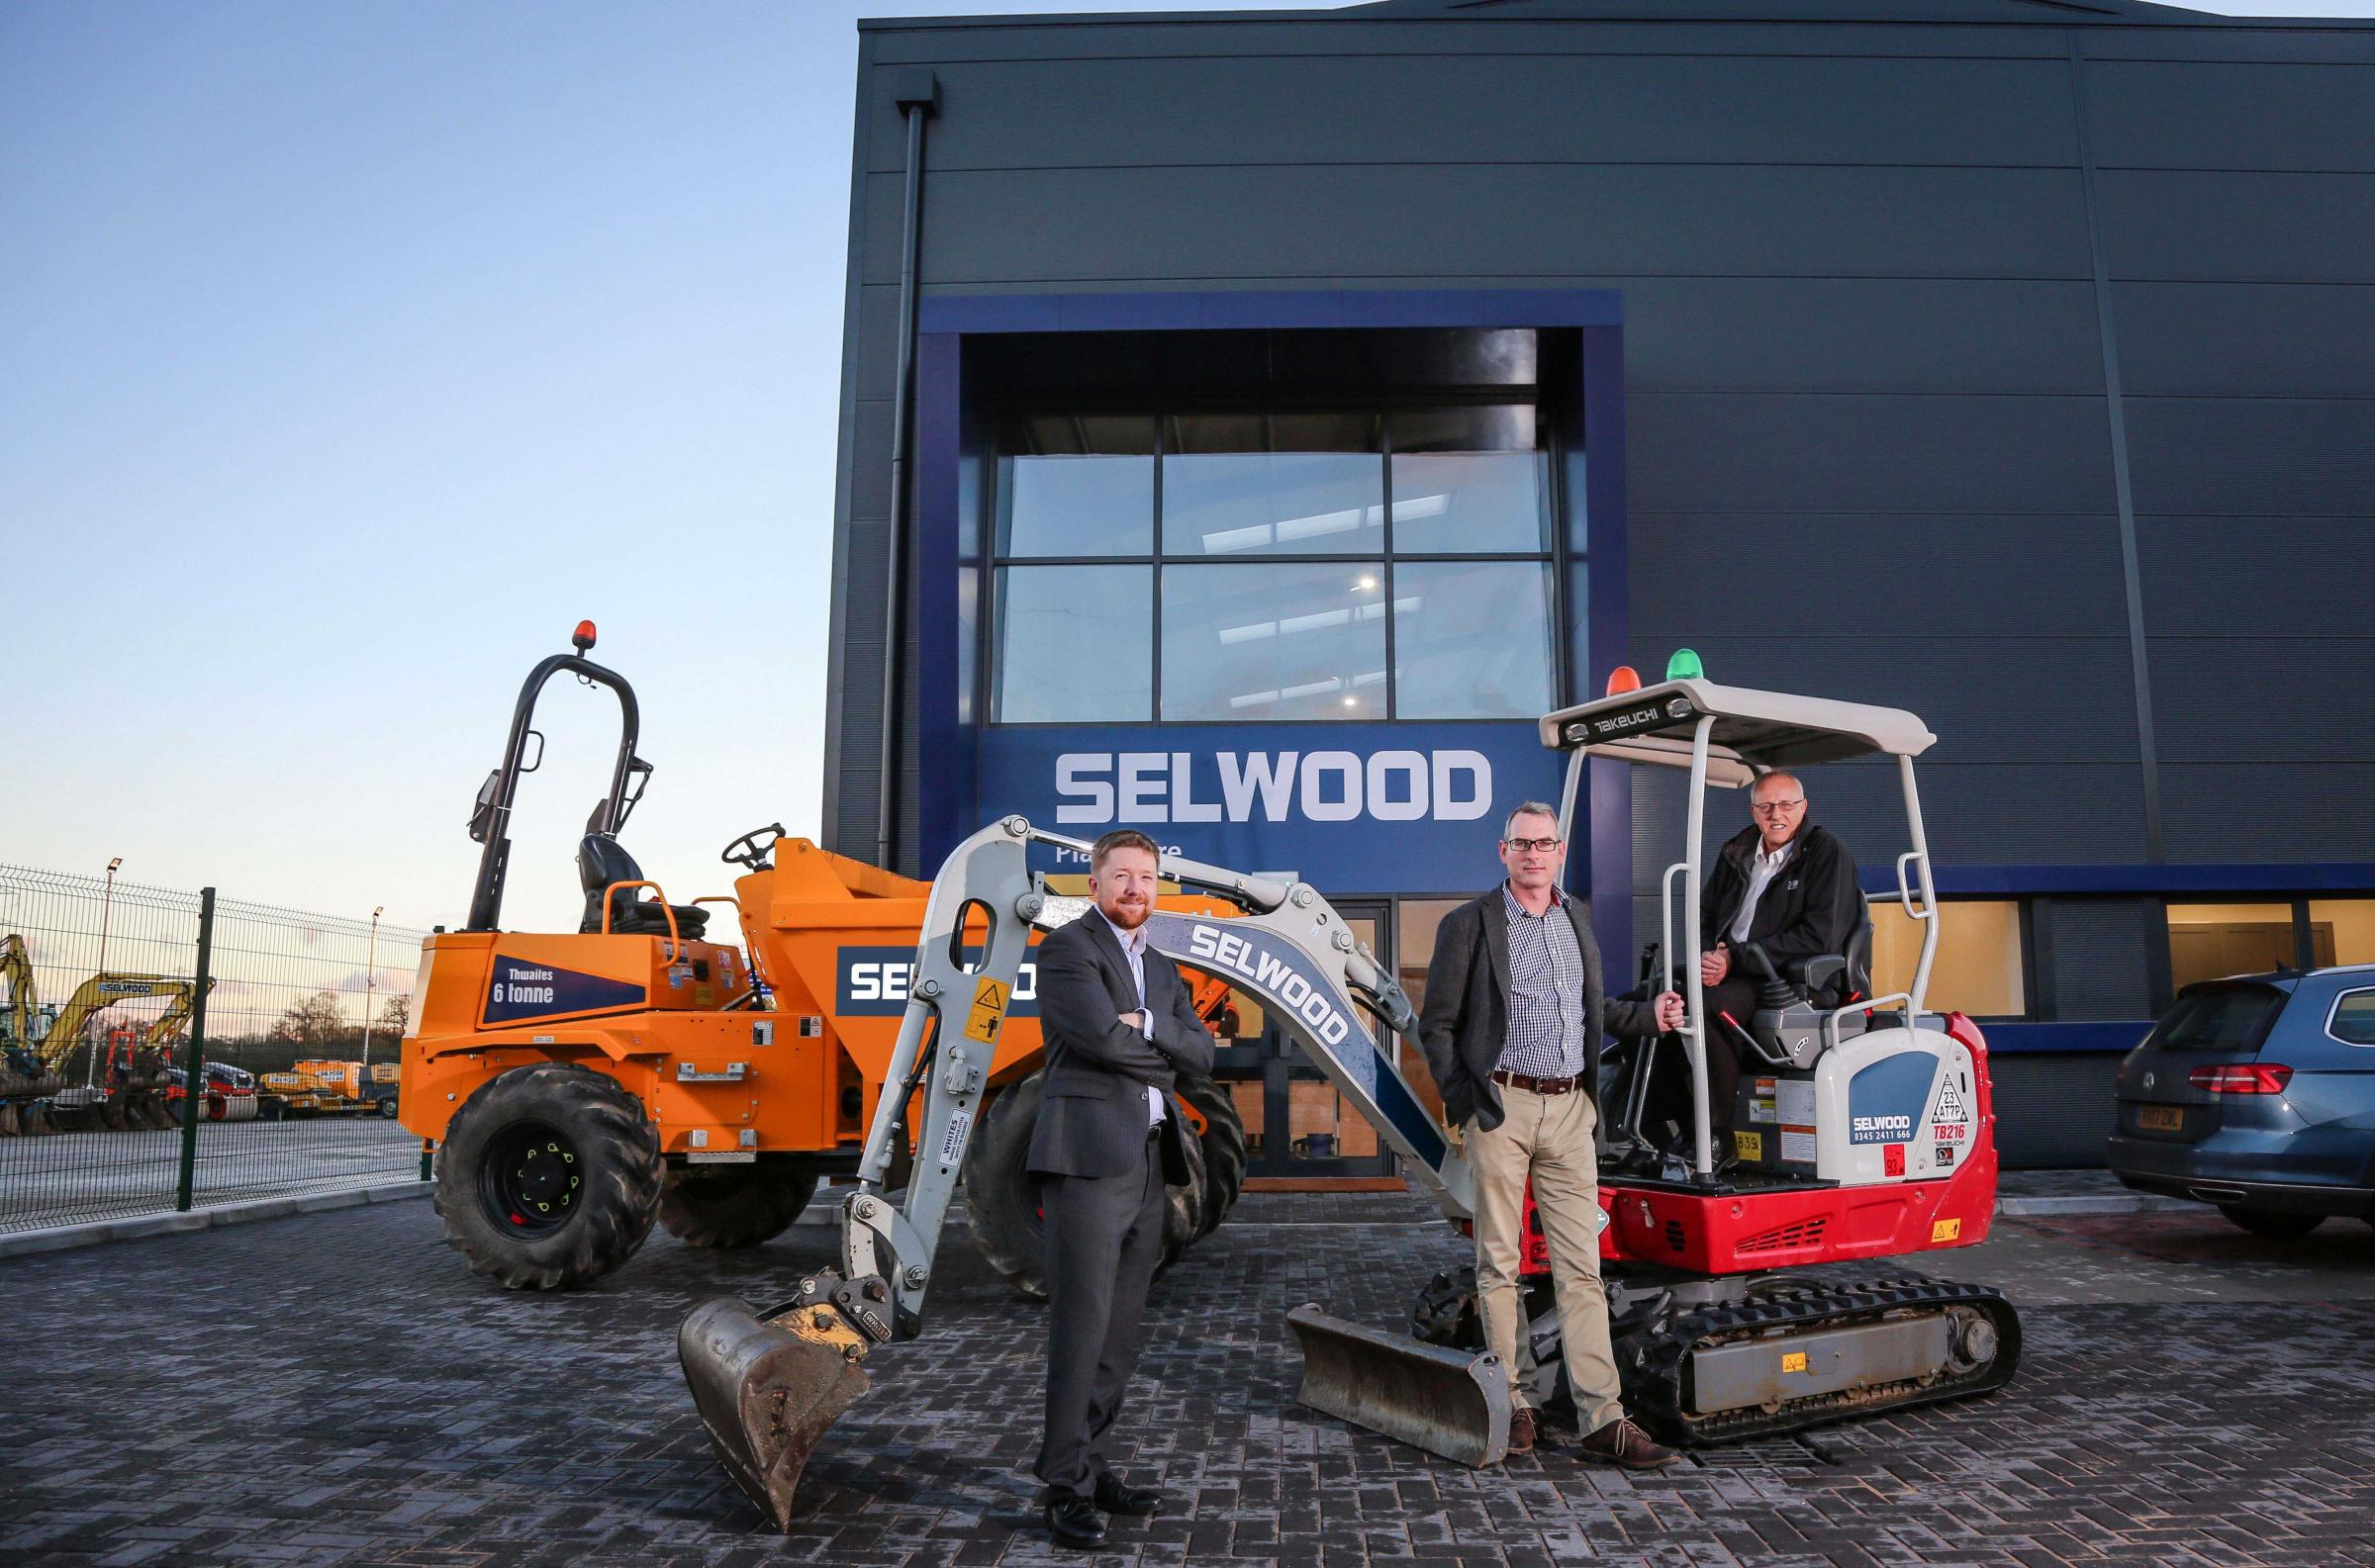 EXPANSION: Outside Selwood's new purpose-built Bournemouth plant hire branch are, from left, Russell Miller of commercial property consultancy Vail Williams, Tim Vincent, Selwood's commercial property manager, and branch manager Andy Killick. Va